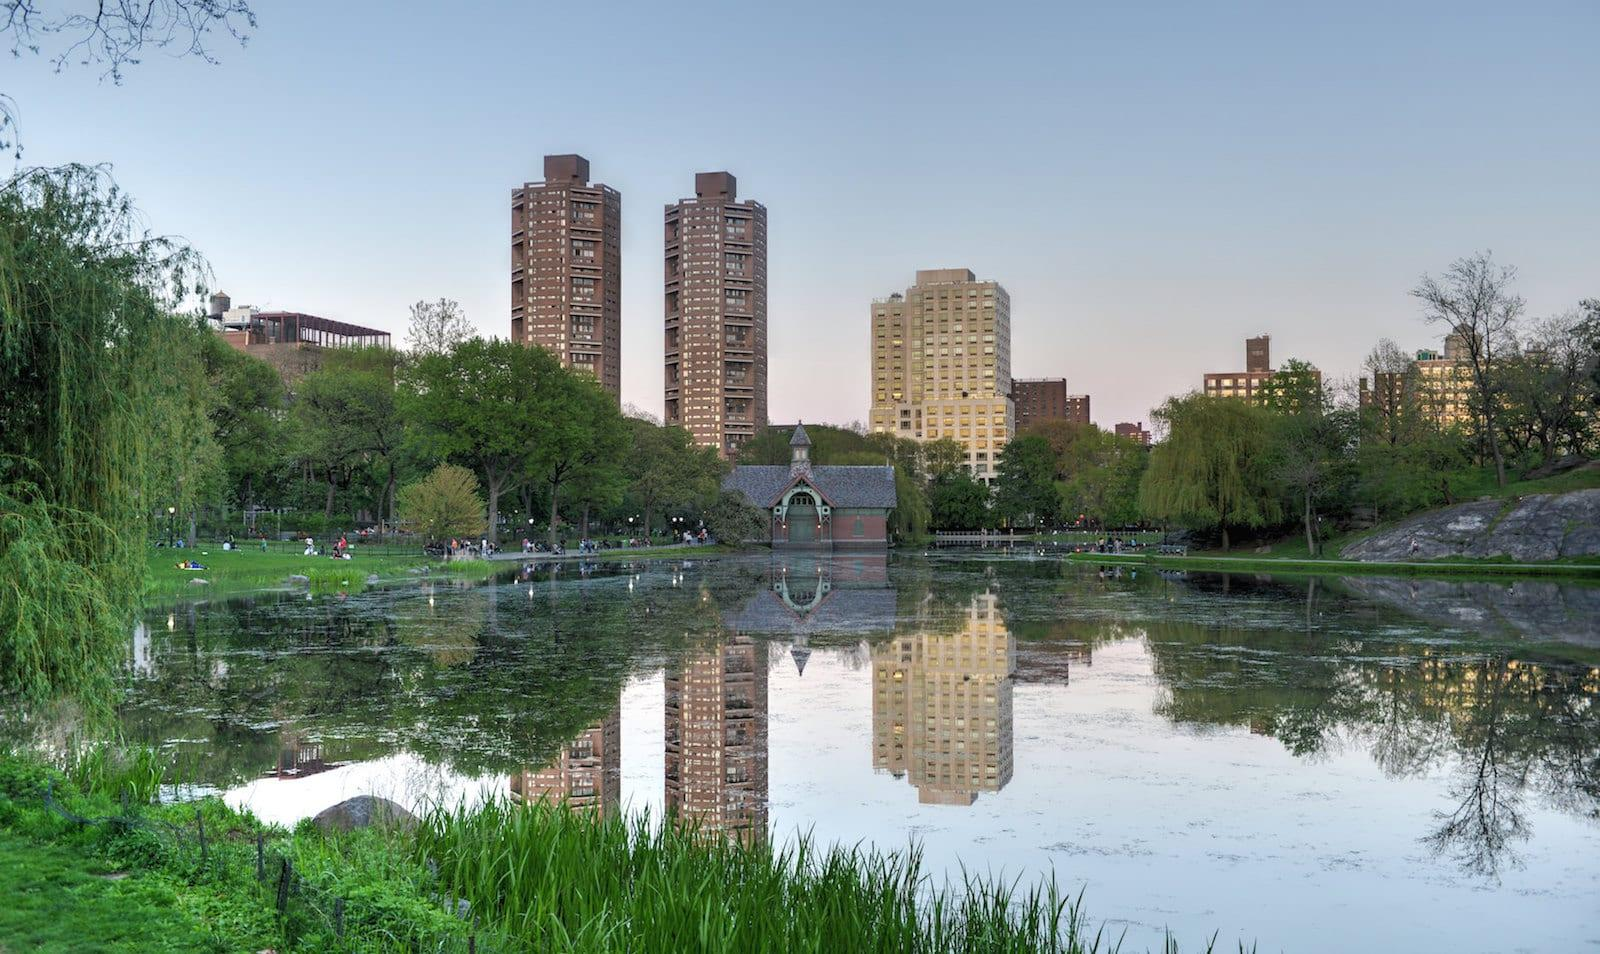 Harlem Meer, Central Park, New York